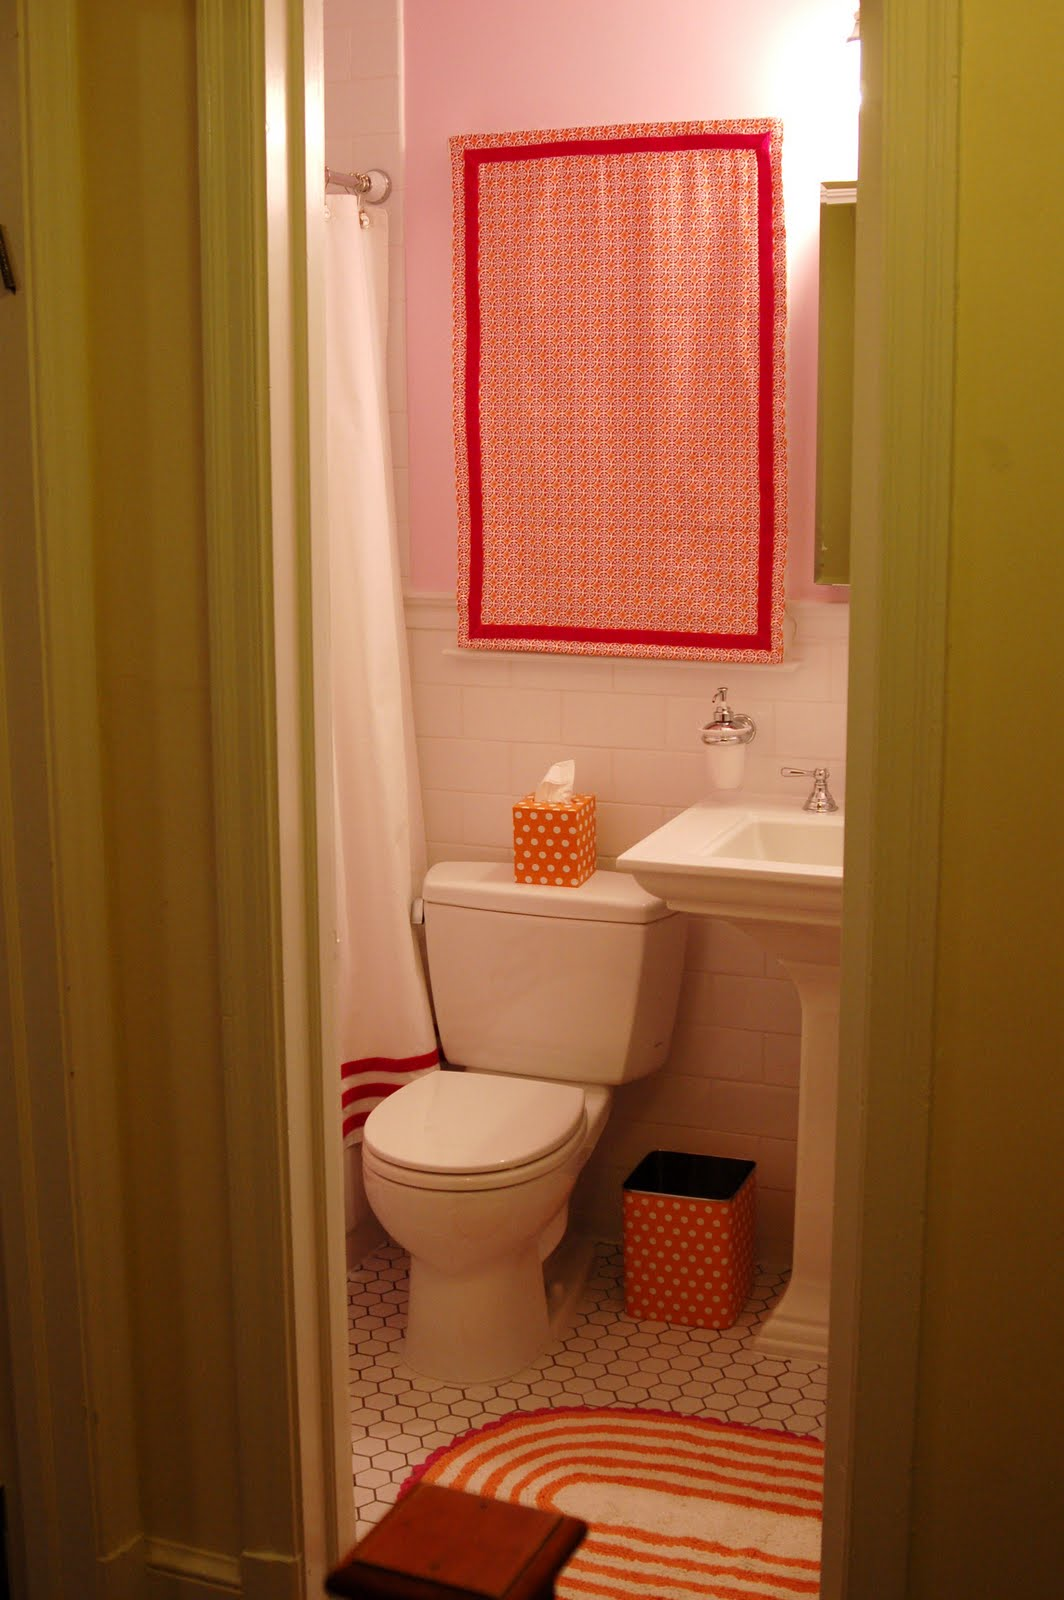 12 devonshire: Before & After: The Girls' Bathroom